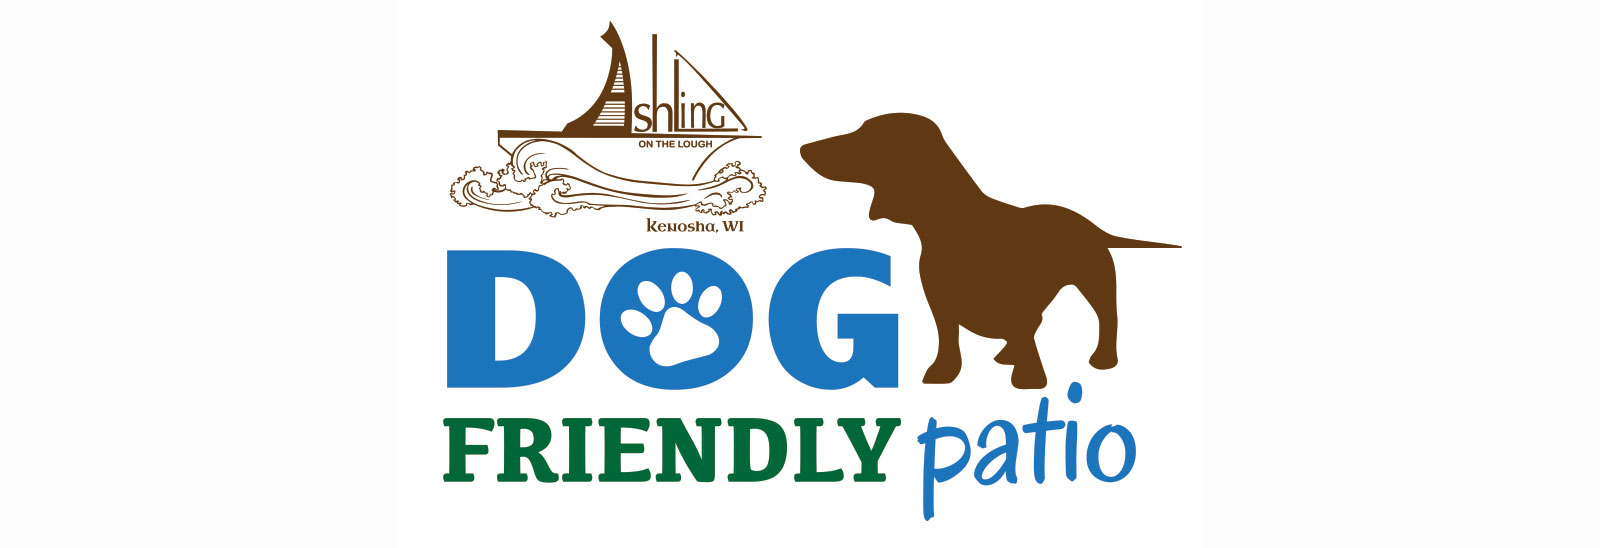 Ashling-Dog-Friendly-Patio-1